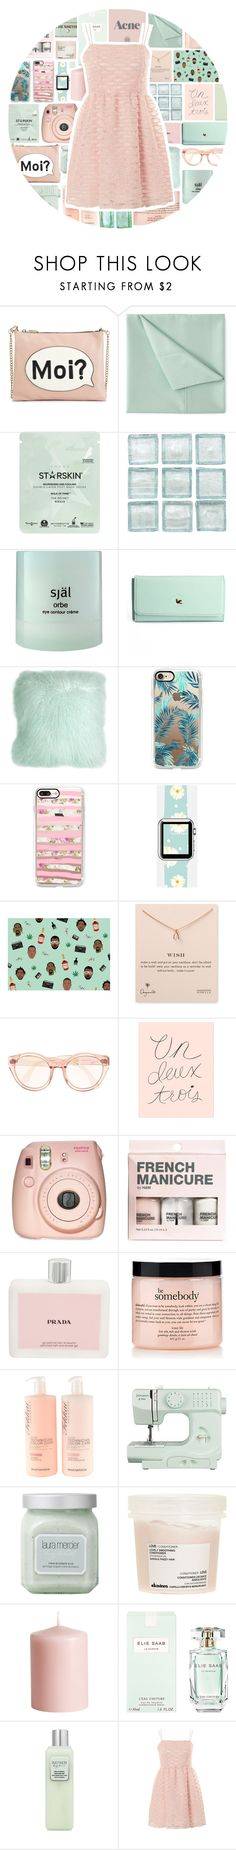 """Pretty"" by stelbell ❤ liked on Polyvore featuring M&S, Simmons, Starskin, själ, Pillow Decor, Casetify, Dogeared, Rifle Paper Co, Fujifilm and Prada"